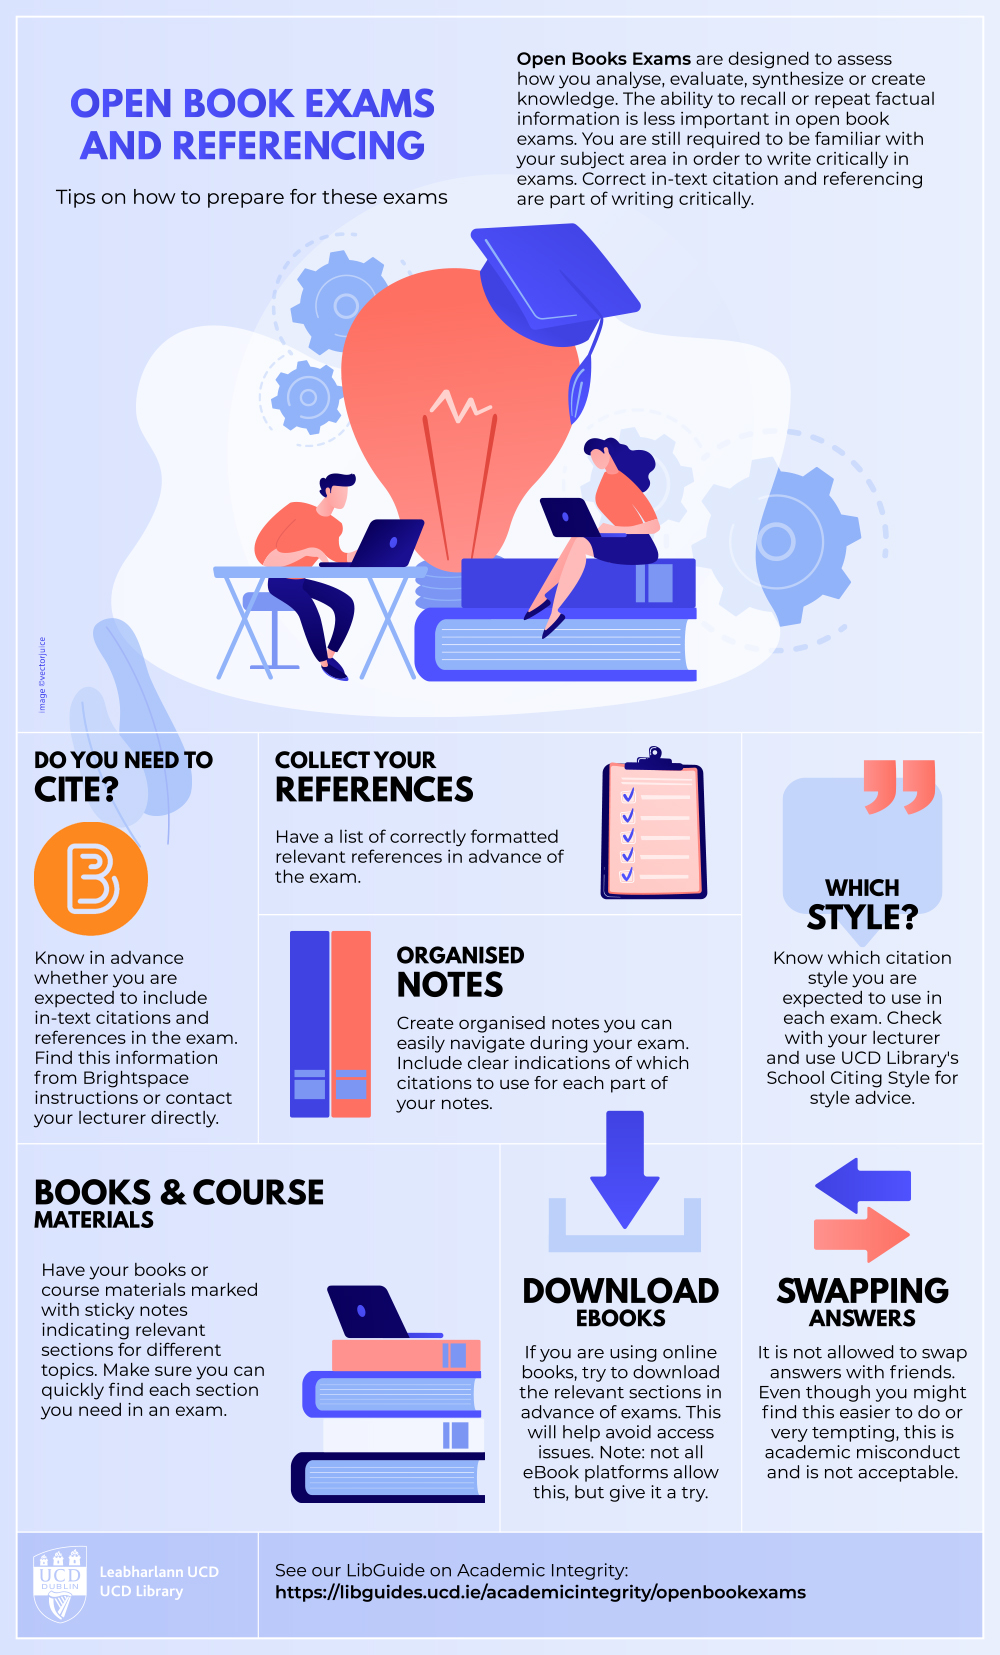 Open Book Exams and Referencing infographic